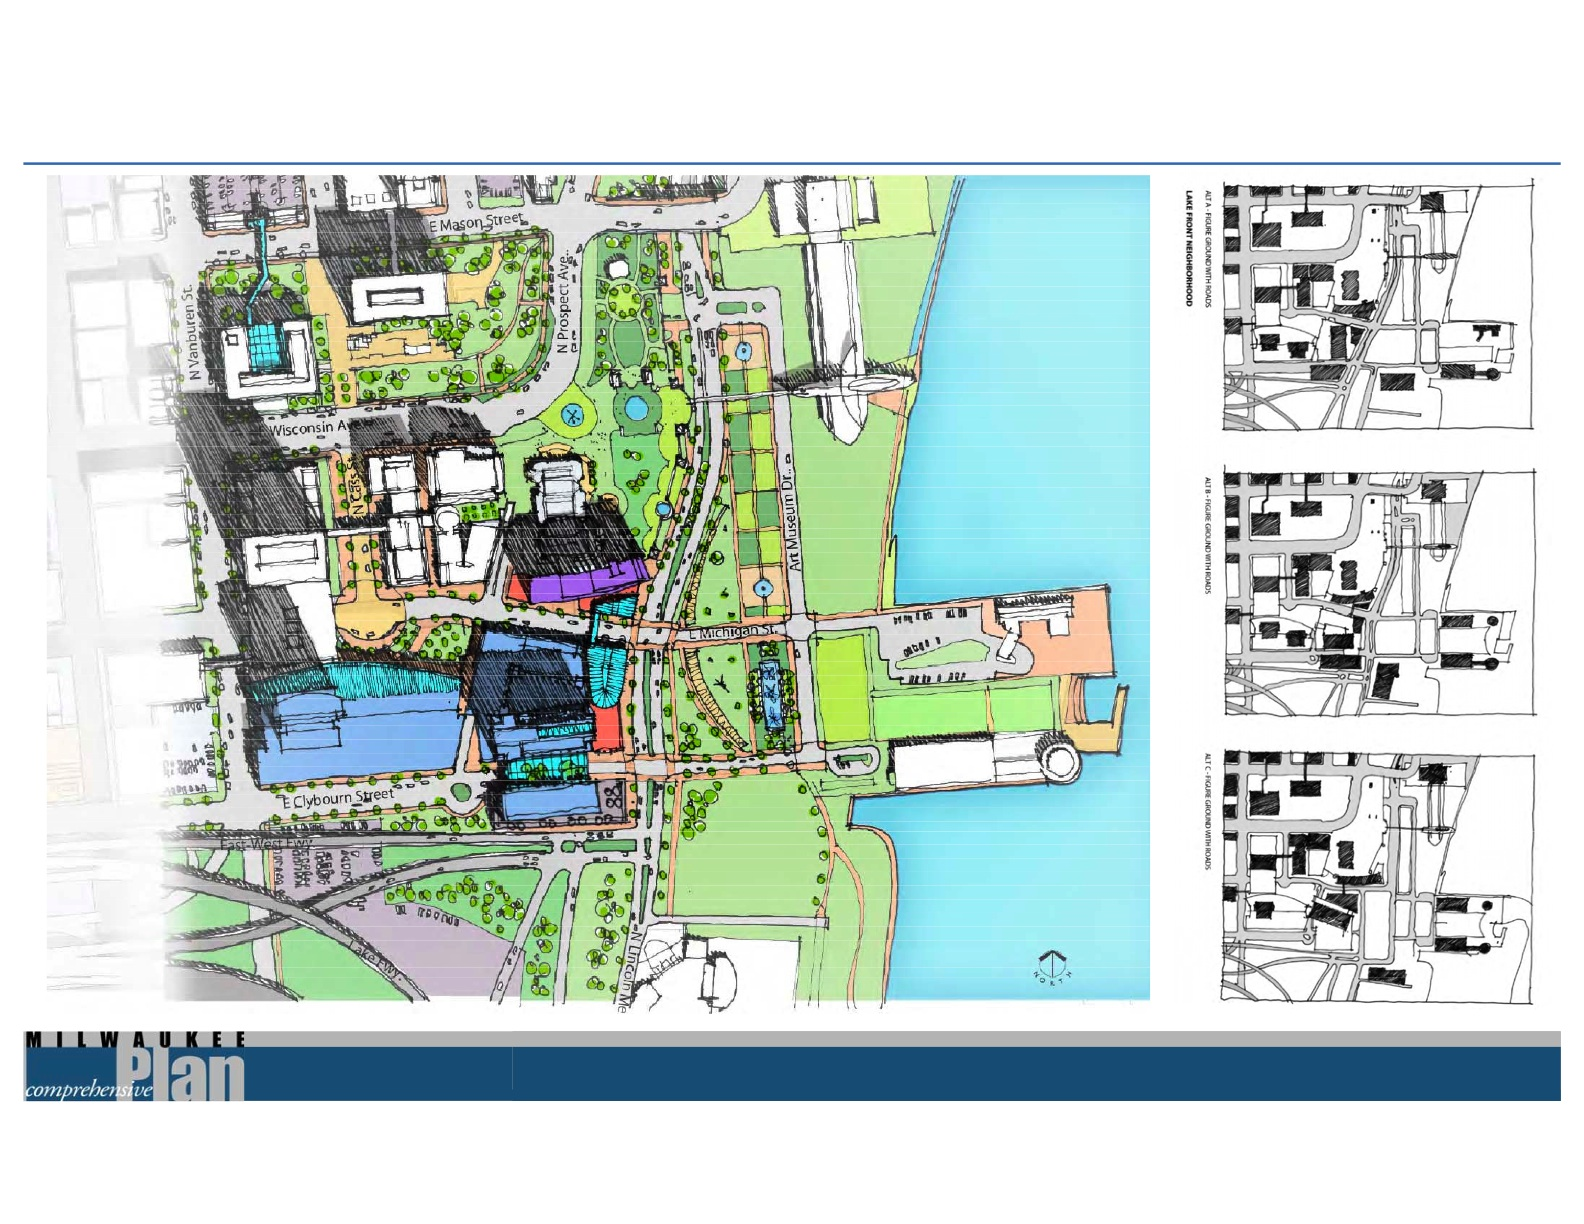 Downtown Plan Gains Approval at Zoning, Neighborhoods & Development Committee